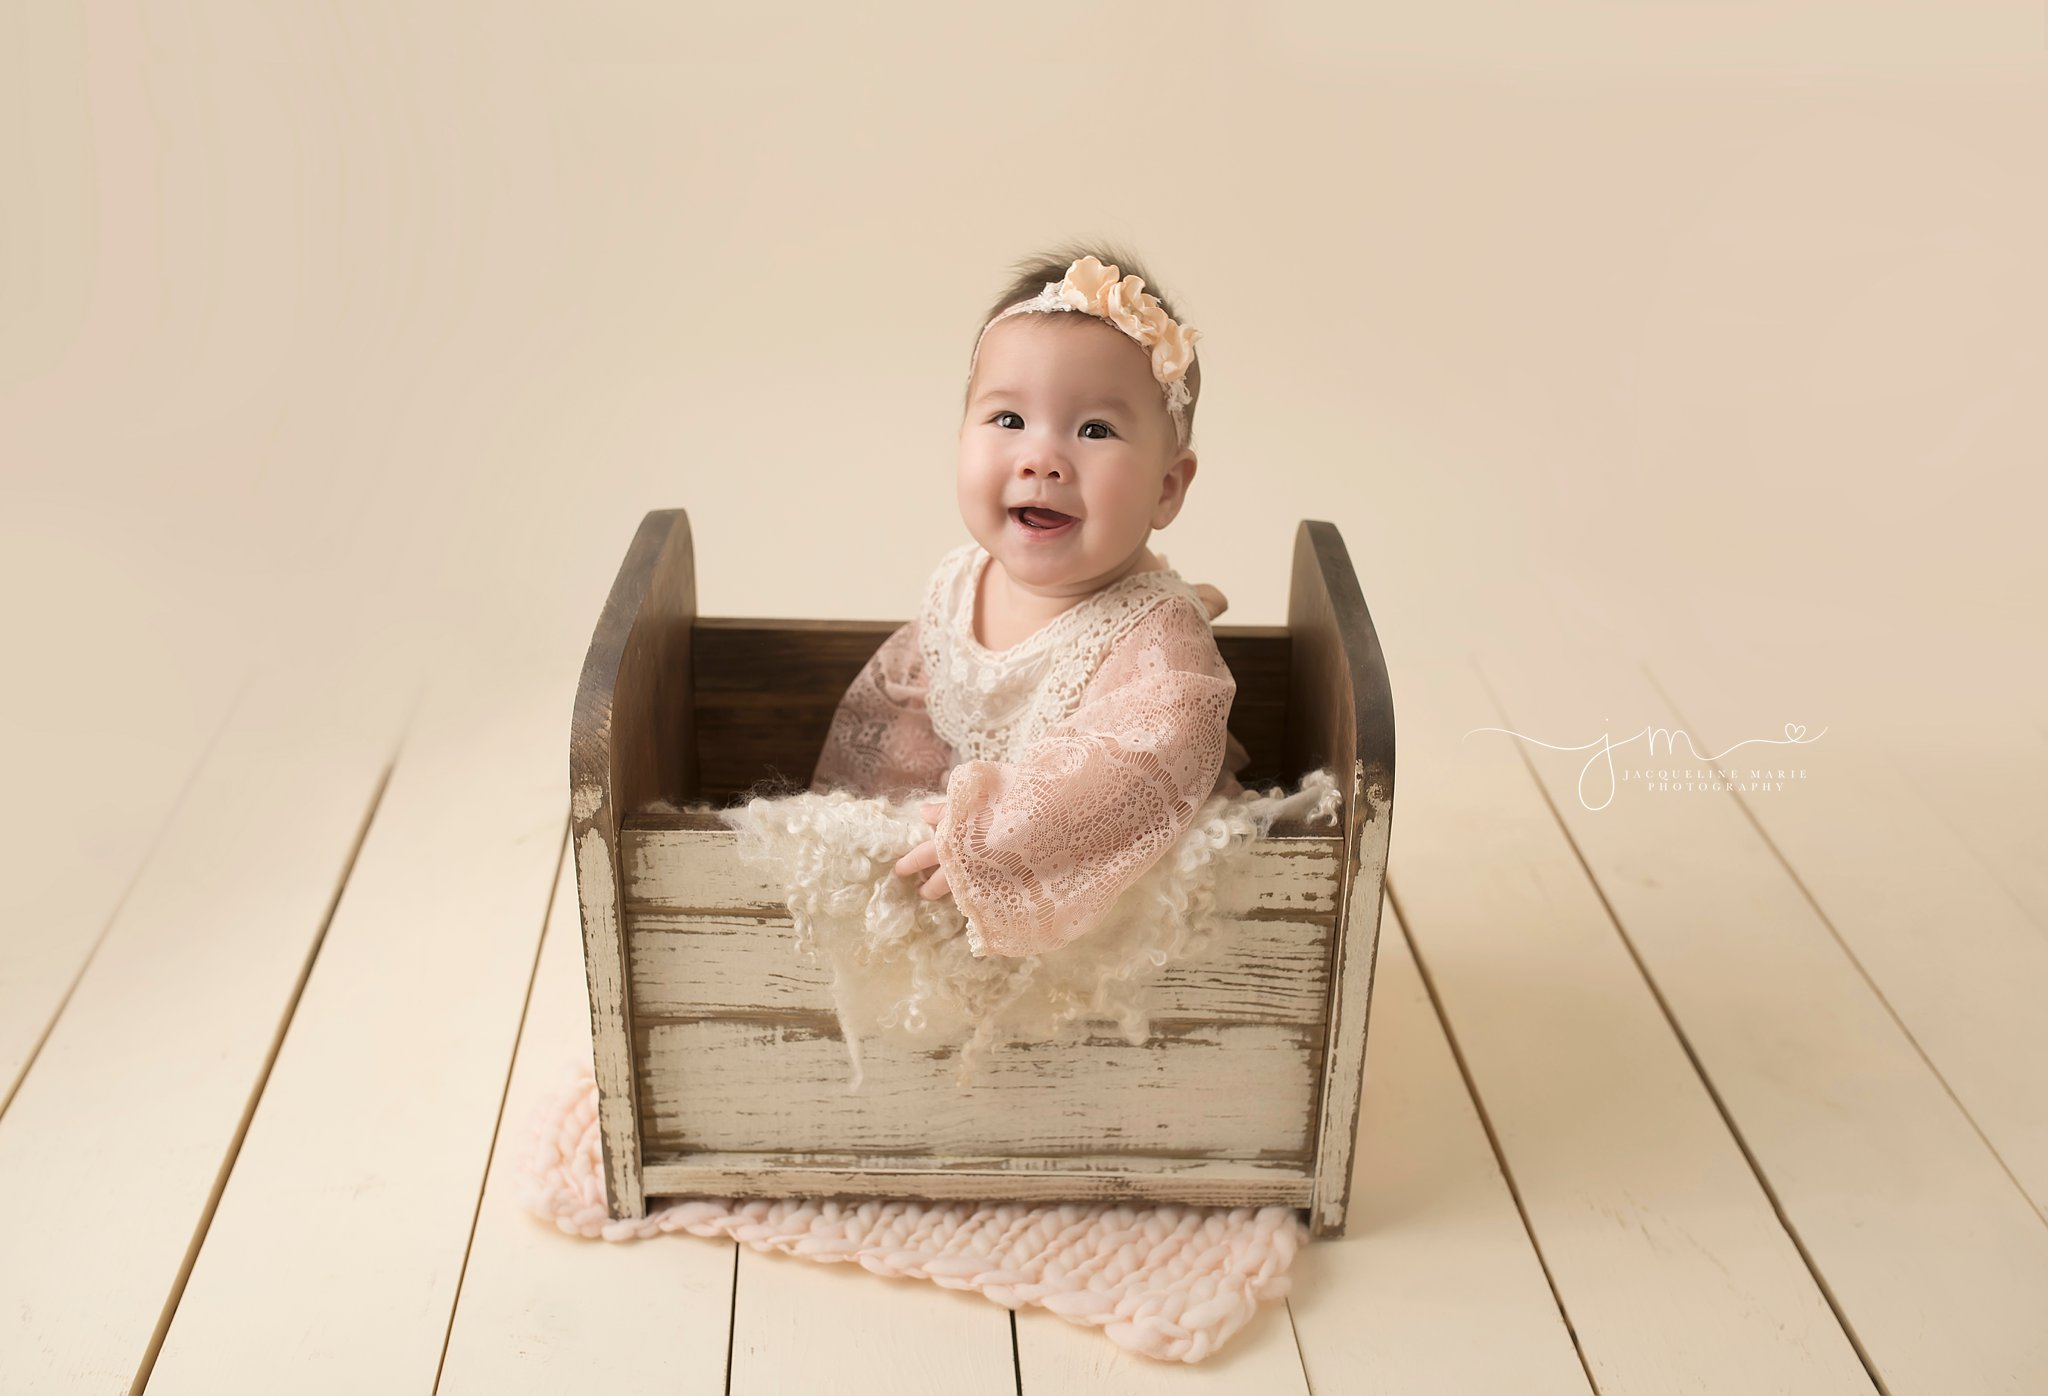 6 month old baby girl from new albany ohio wears pink romper while sitting in cream wood bed for milestone pictures at jacqueline marie photography